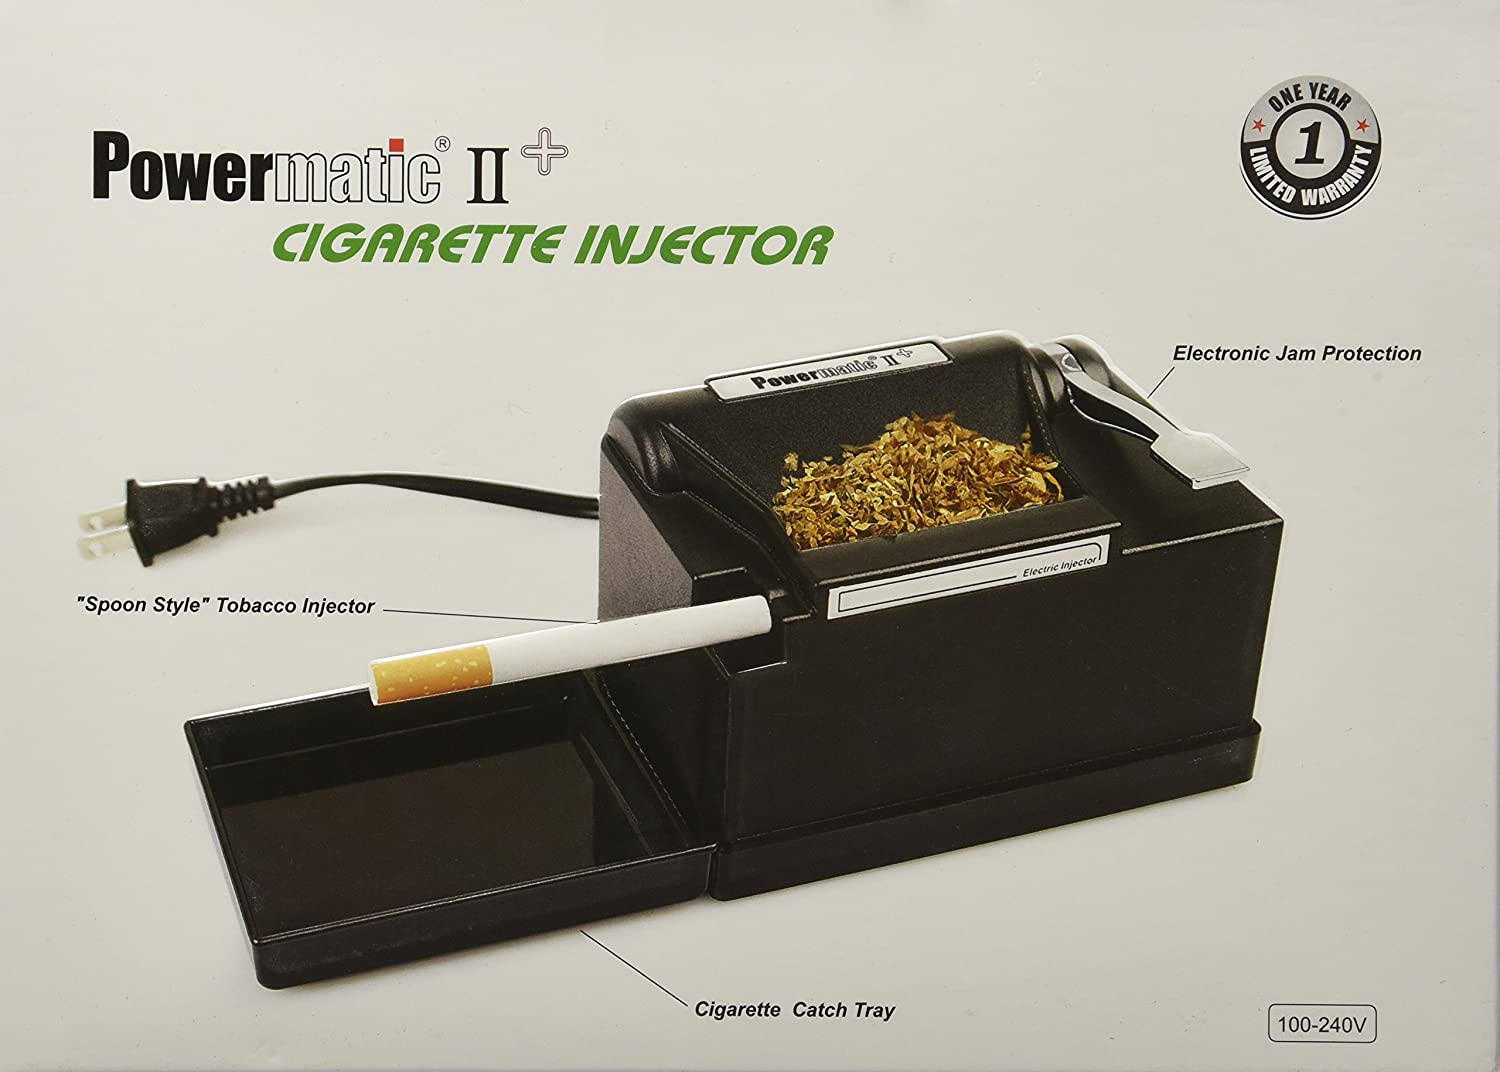 Top 10 Best Cigarette Injector Rolling Machine Reviews 2015 2016 Hoosvc84z on electric motor made easy